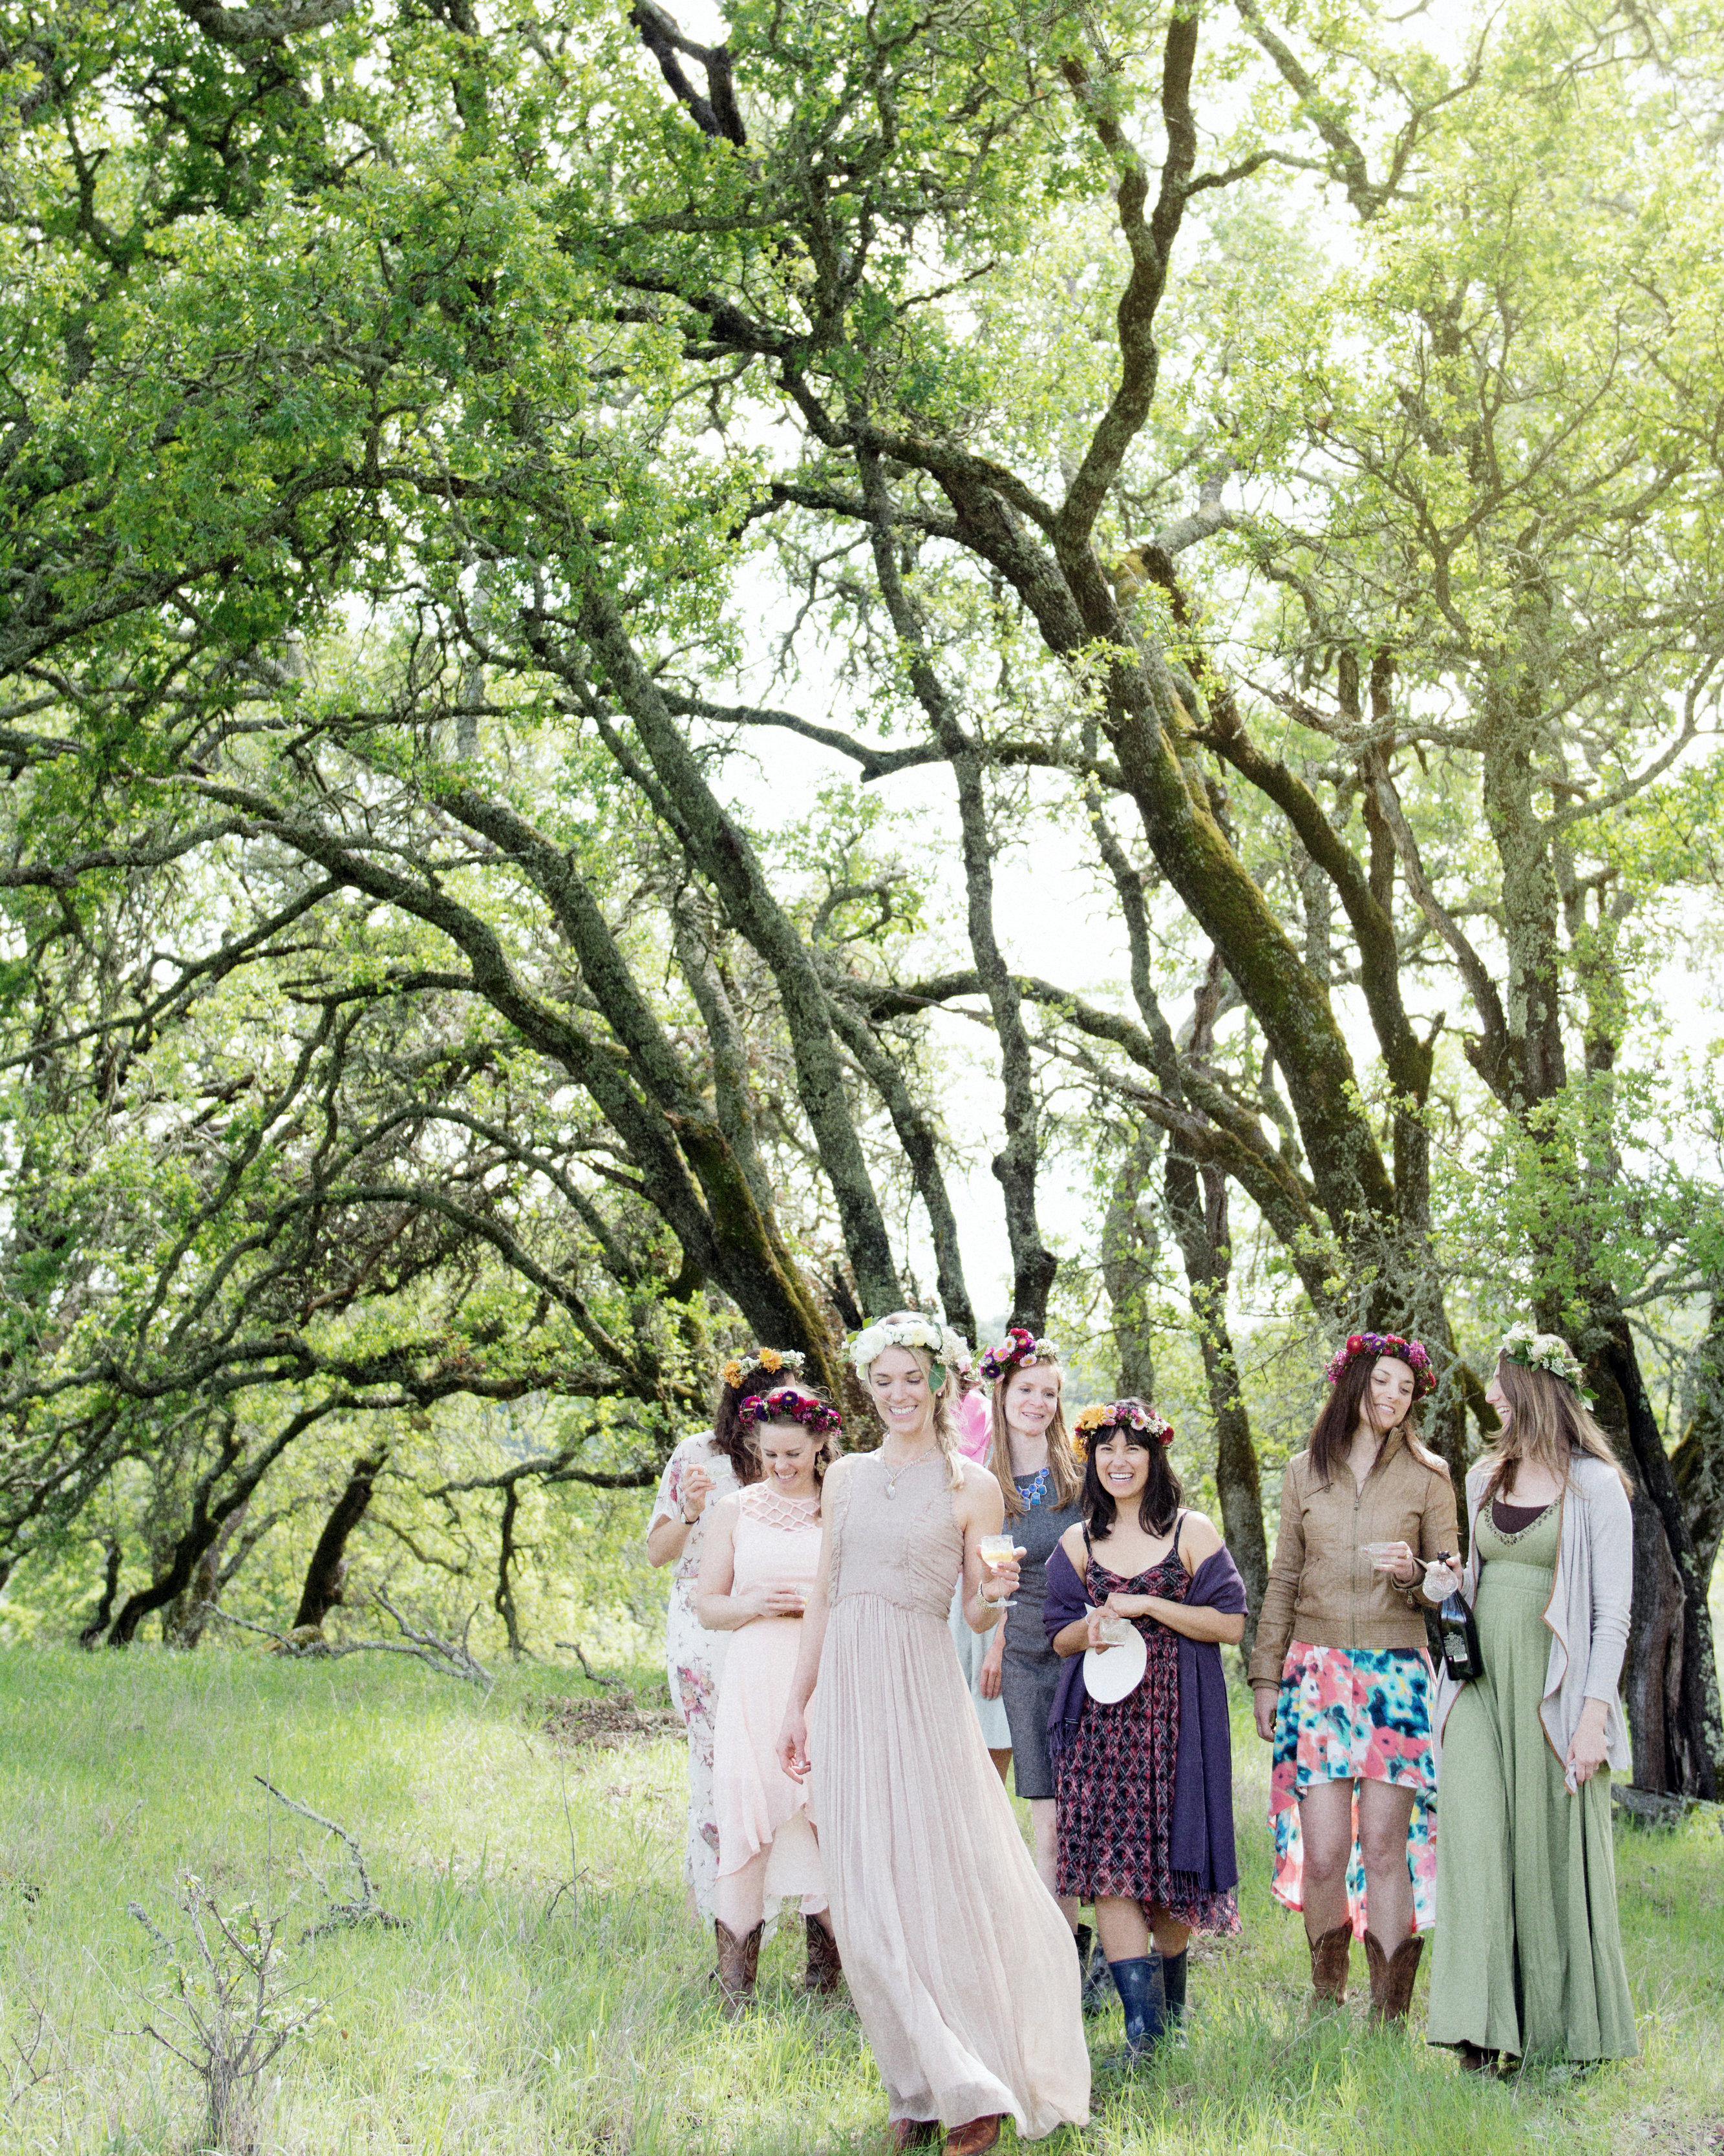 Expert-Approved Tips for Planning a Flawless Bridal Shower in Your Own Backyard